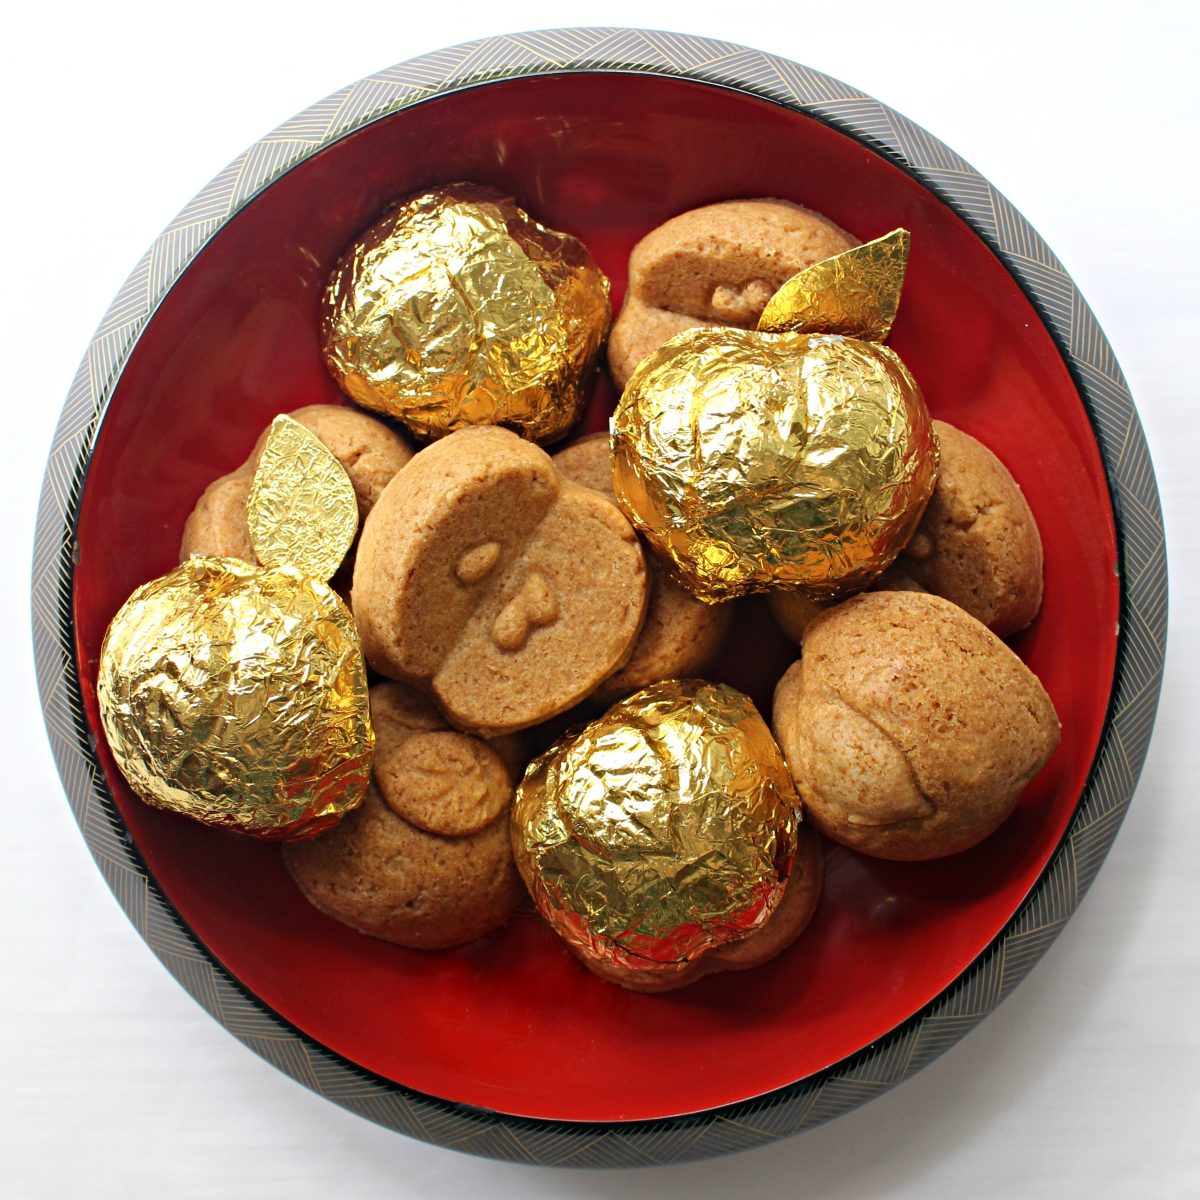 Apple shaped cookie-cakes, some wrapped in gold foil, inside a red laquered bowl.